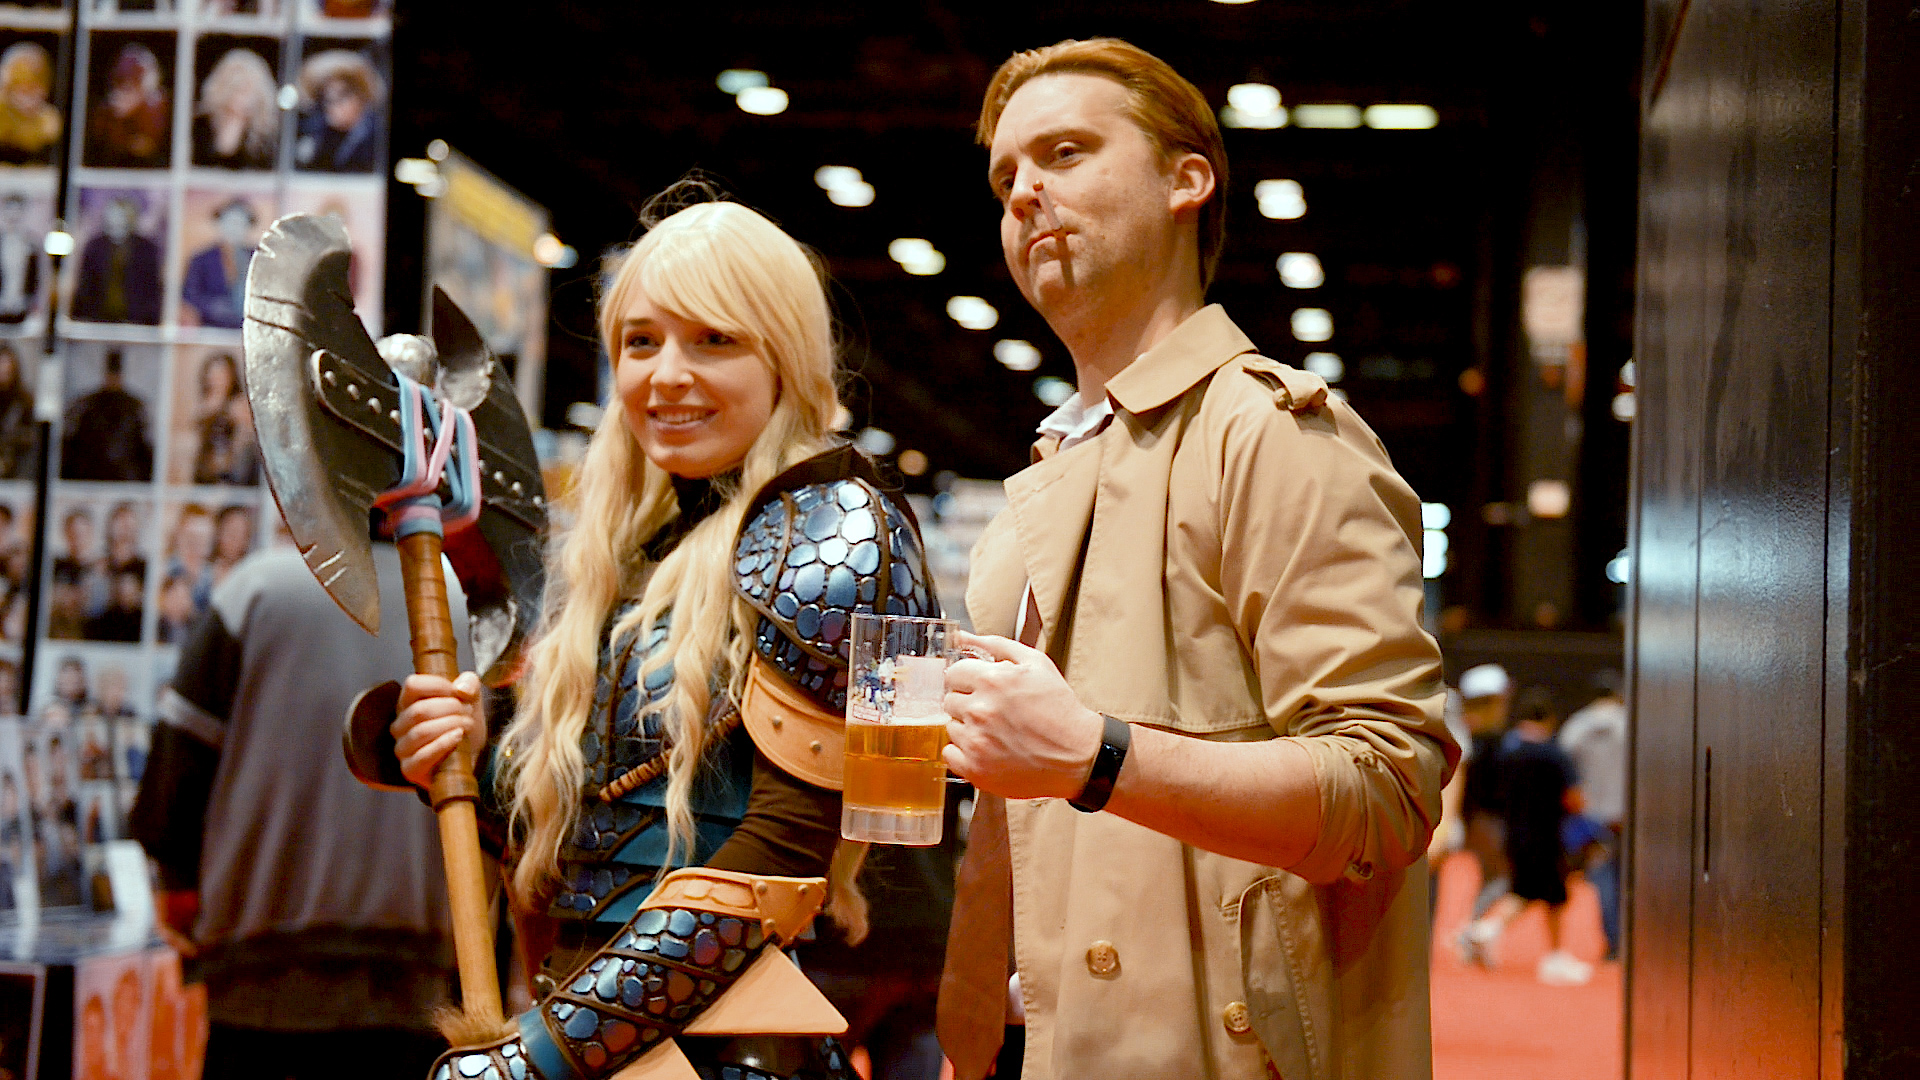 astrid and cosplayer at convention